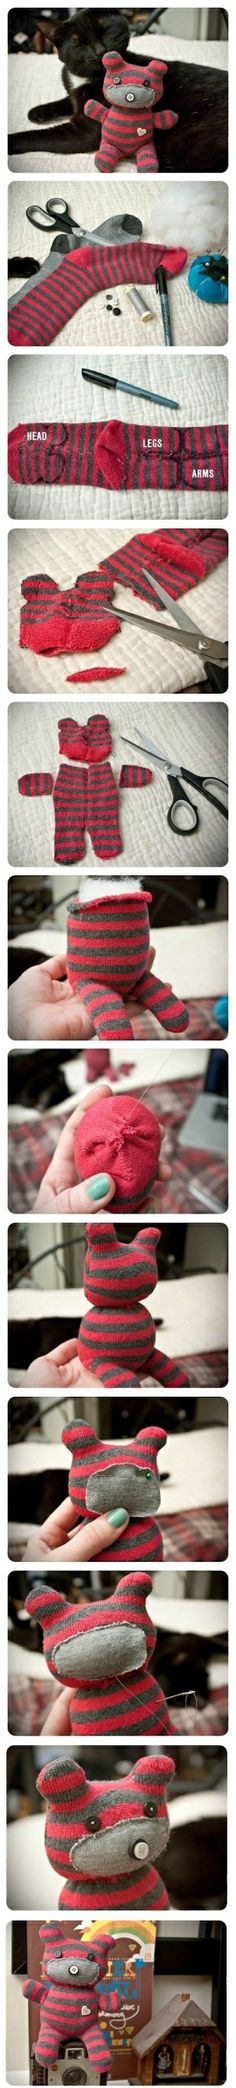 #KatieSheaDesign ♡❤ ❥▶ DIY Cute Little Teddy Bear. Cuter cat! :D by amayaa